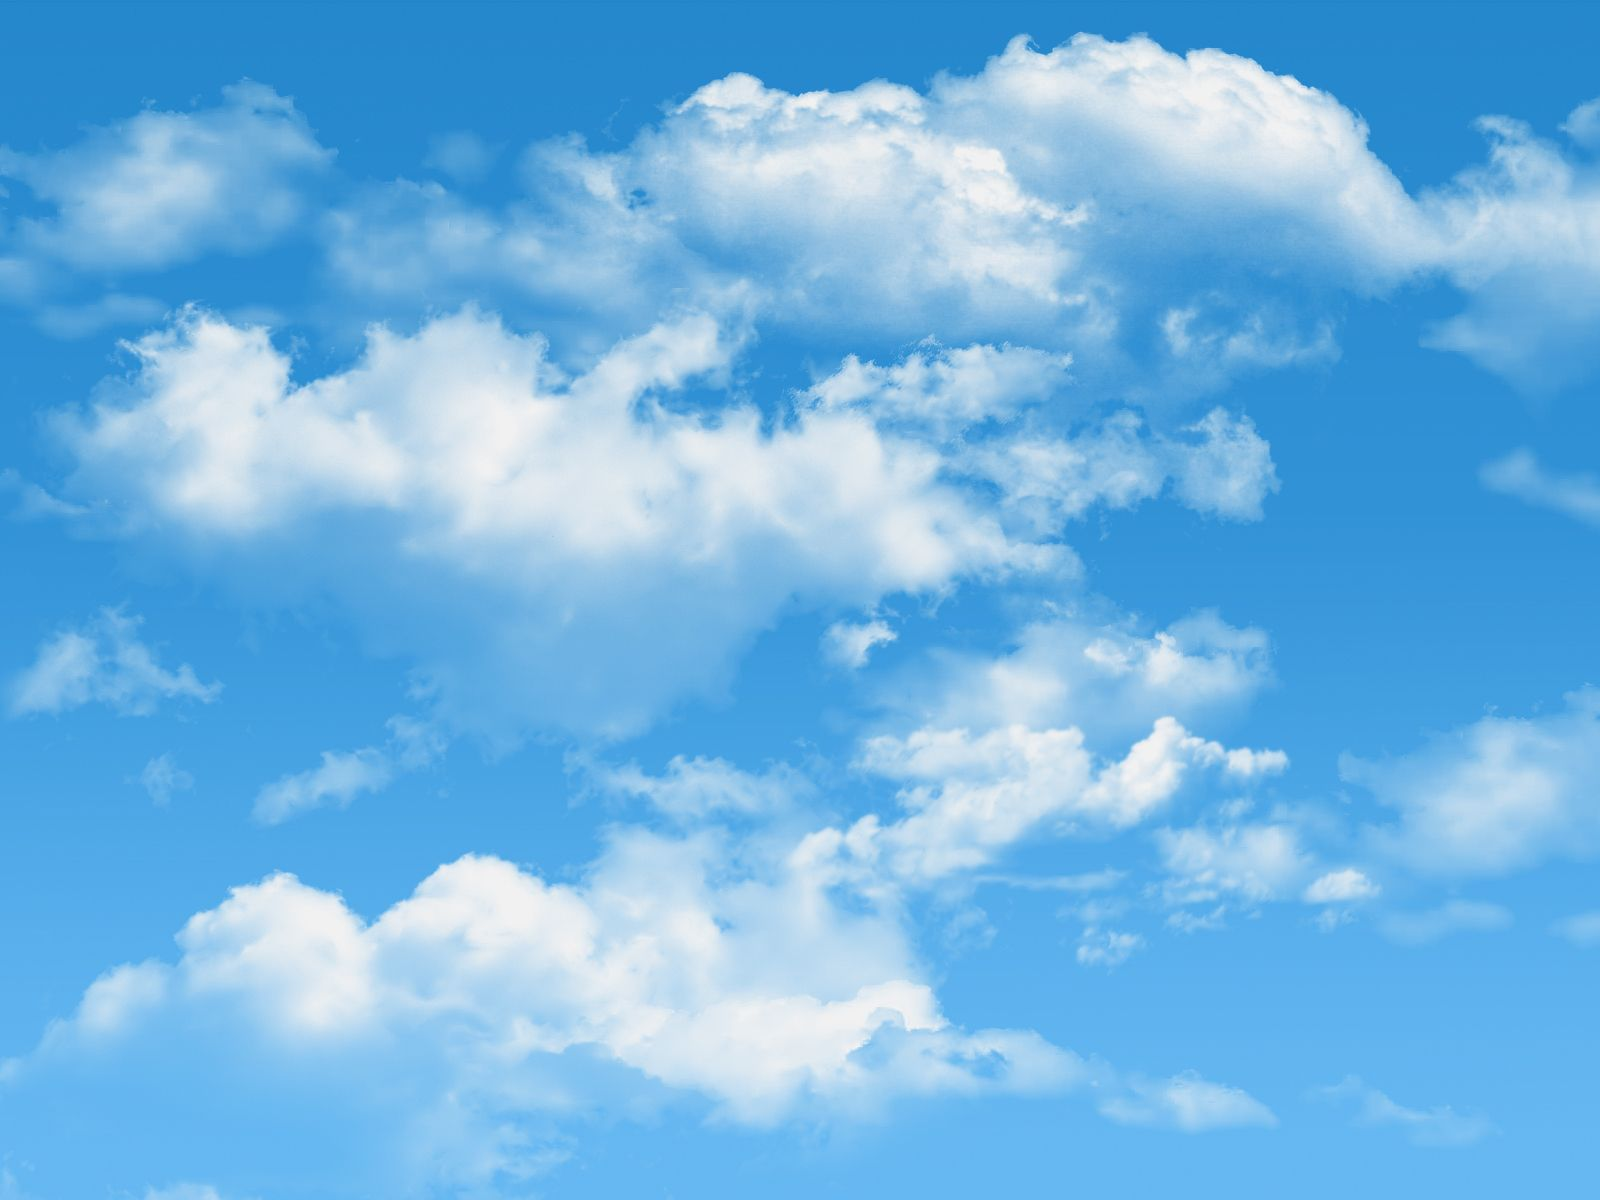 I See Skies Of Blue And Clouds Of White